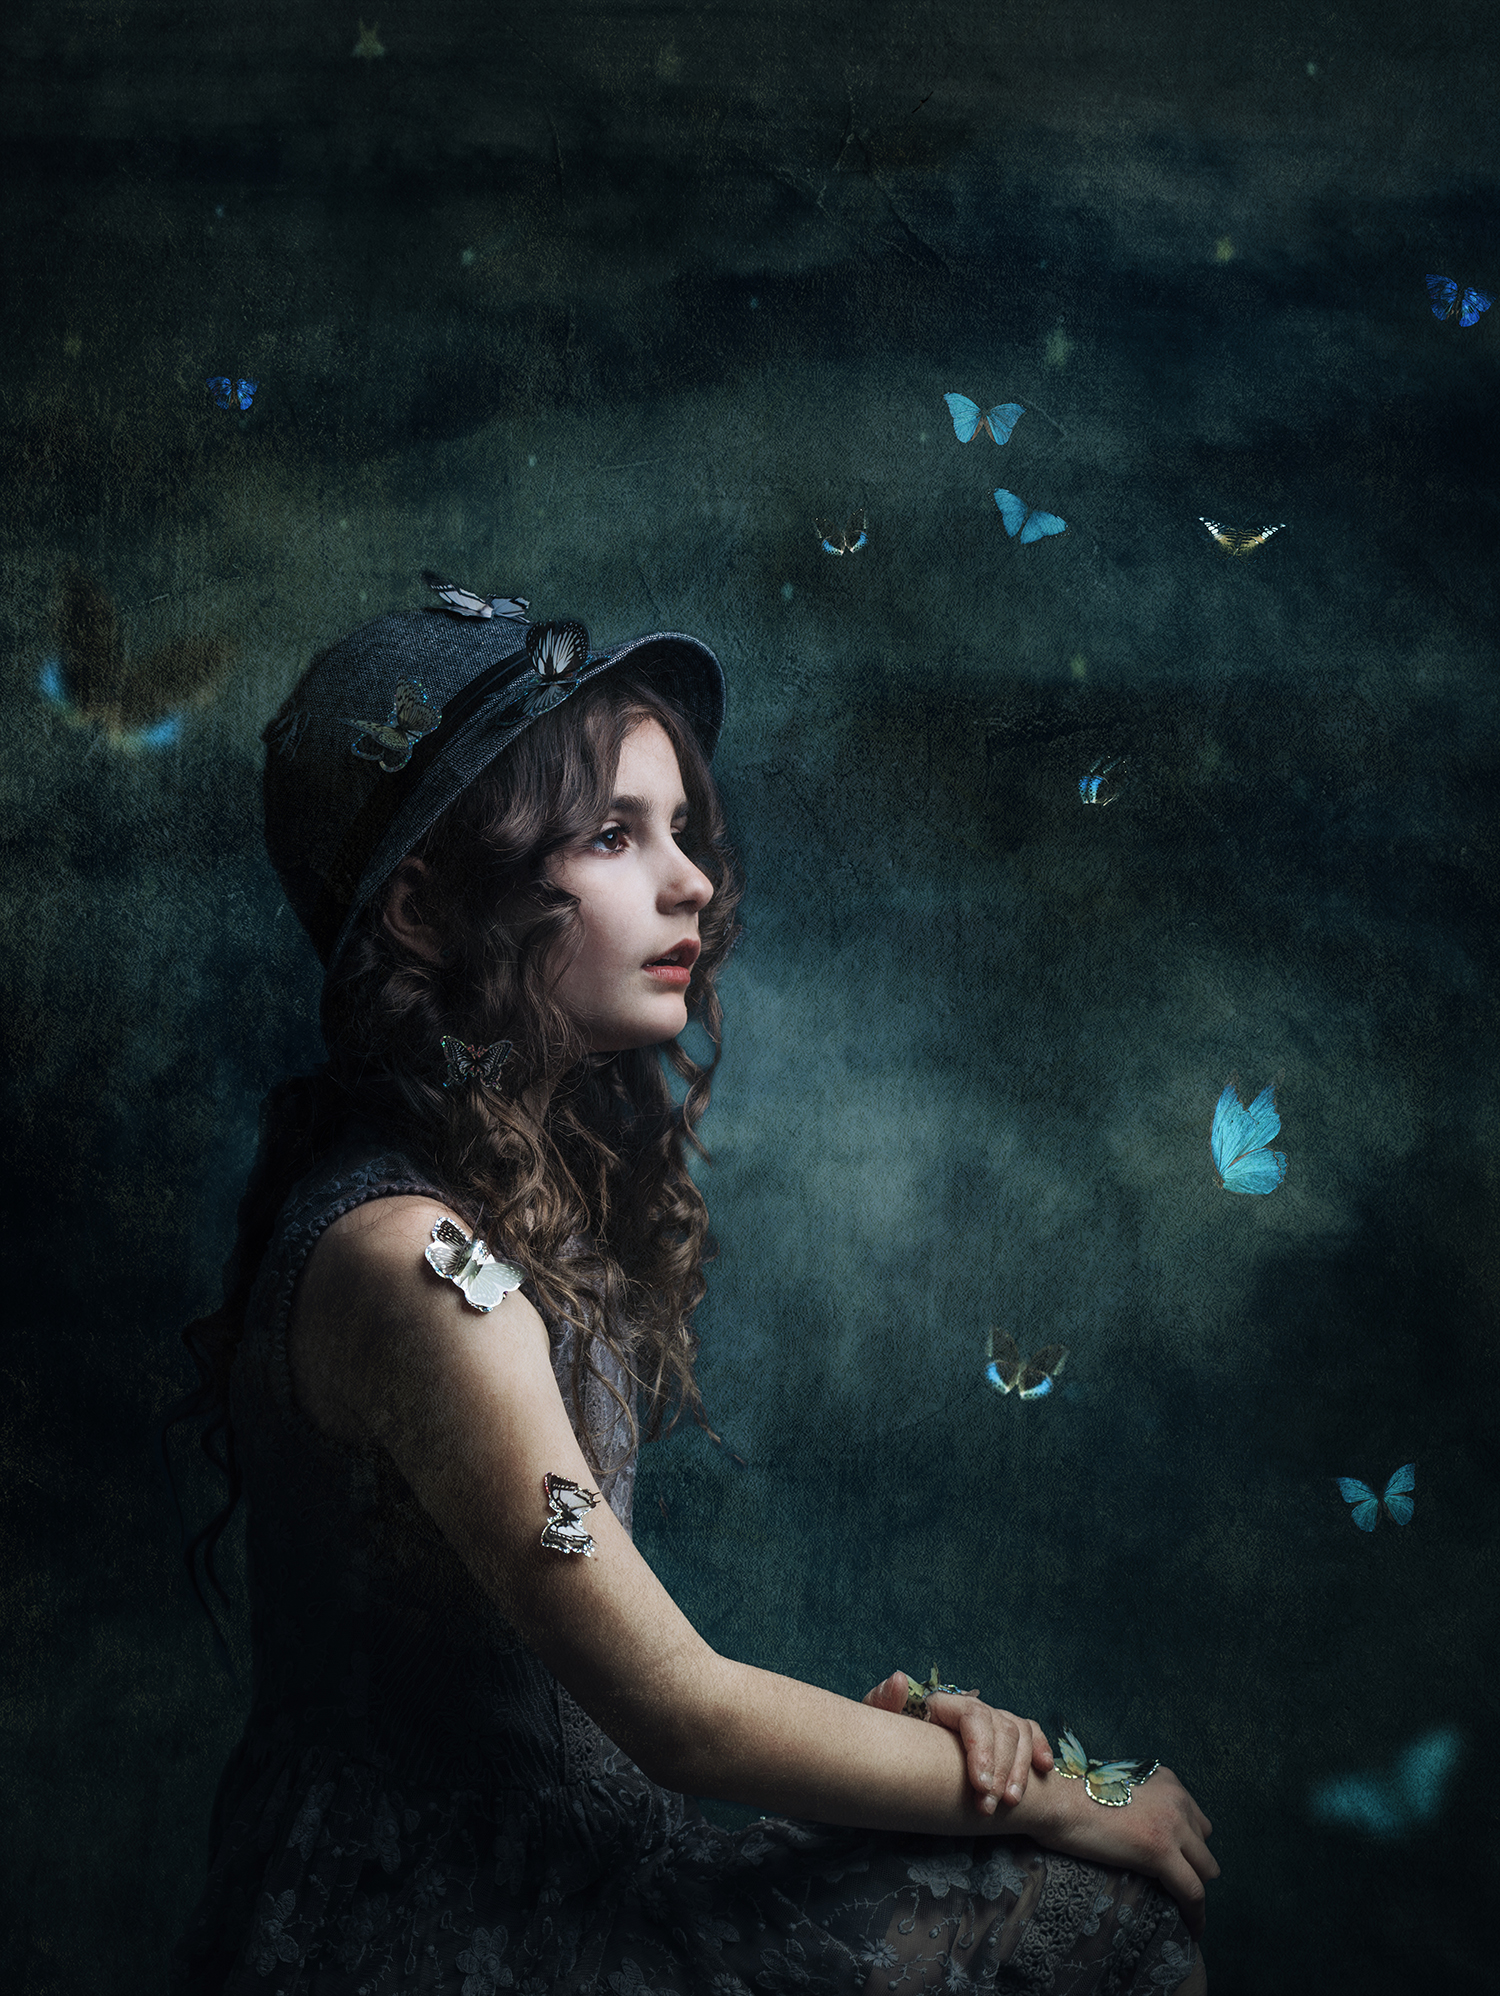 Dreamy fine art photograph of a girl surrounded by butterflies